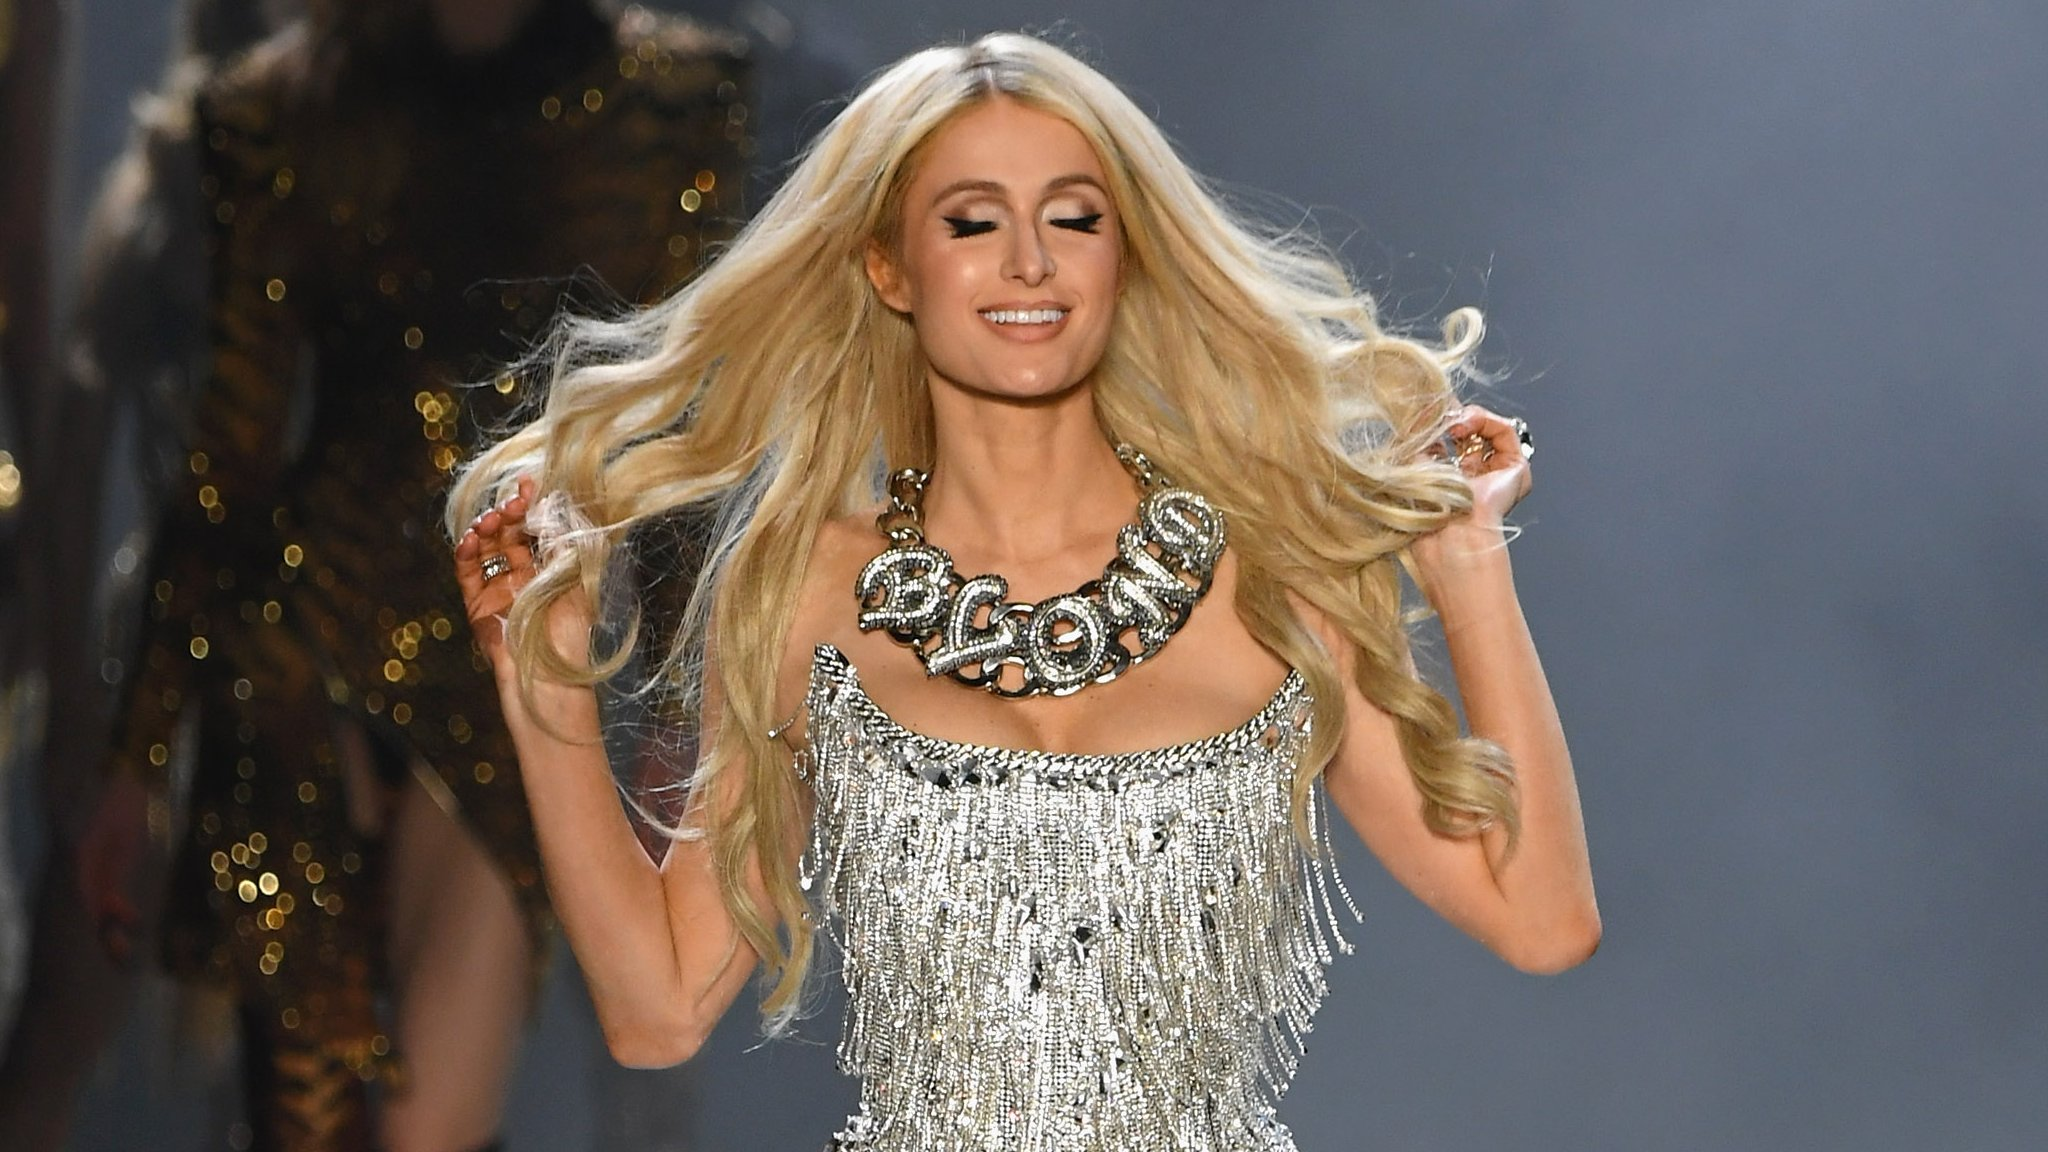 New York Fashion Week: Paris Hilton and 9 other talking points